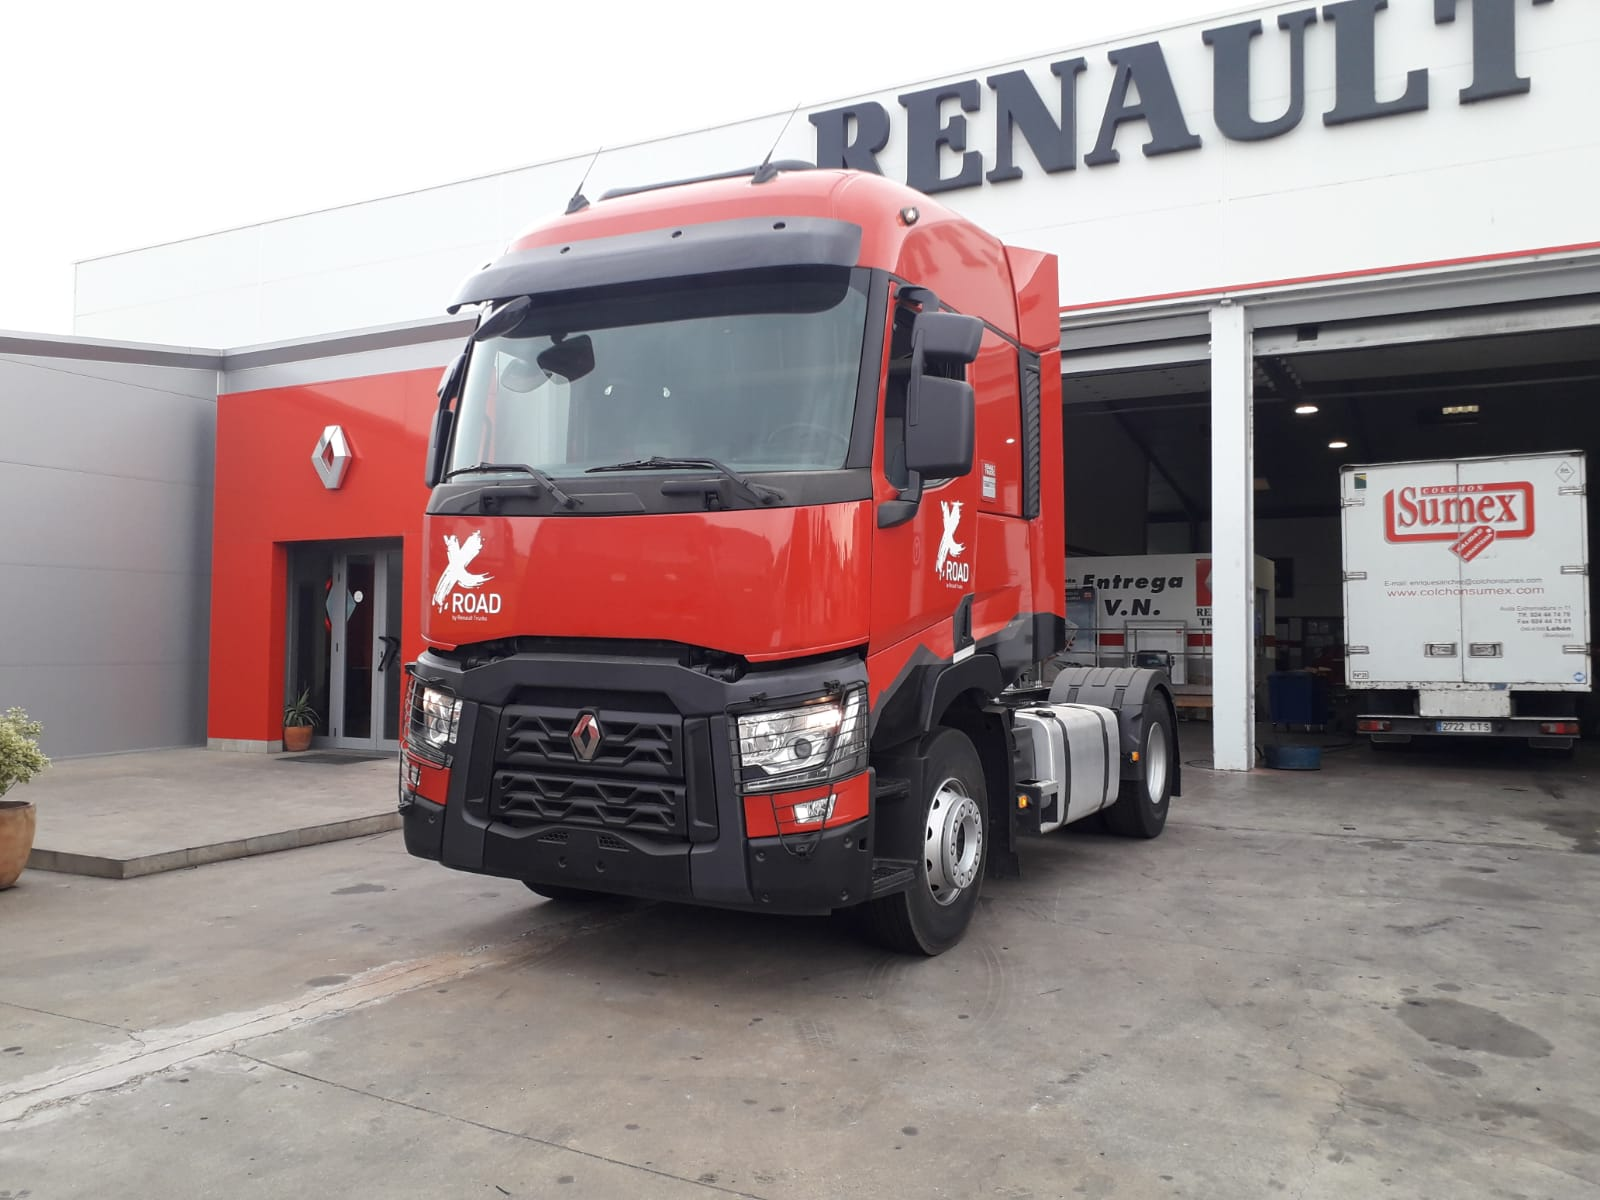 RENAULT T 460 T X-Road